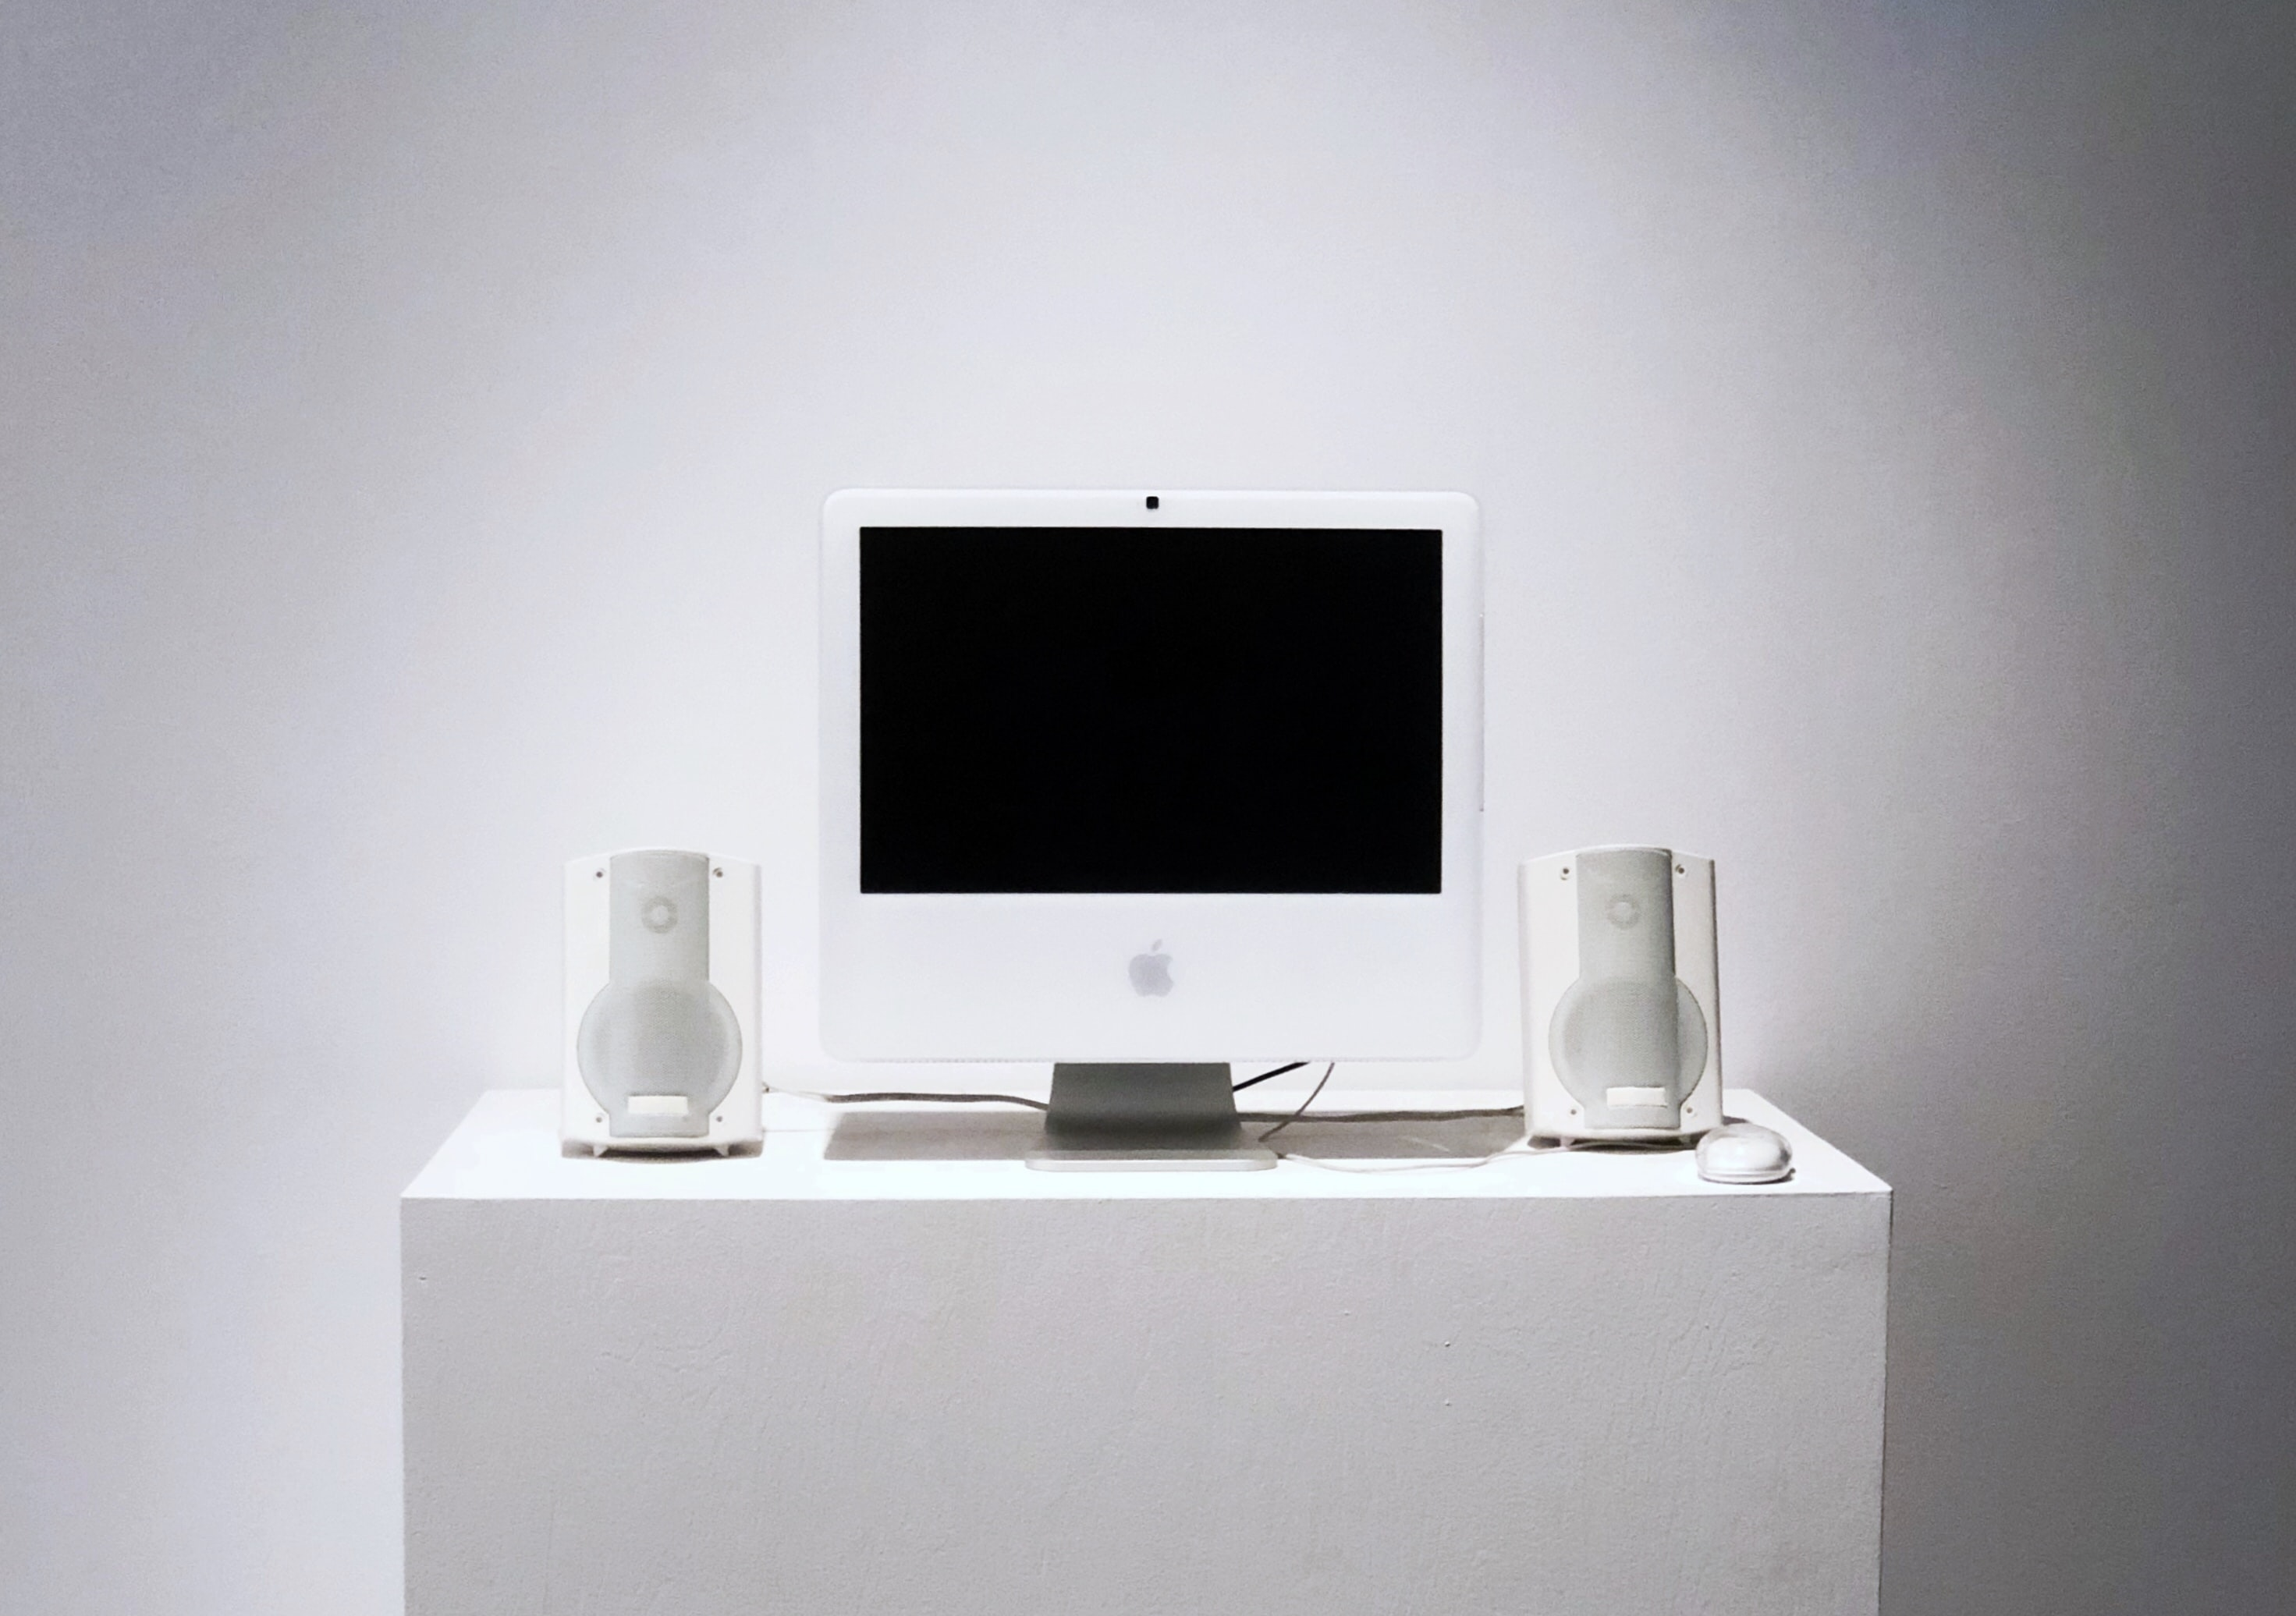 Apple Studio Display monitor on white table